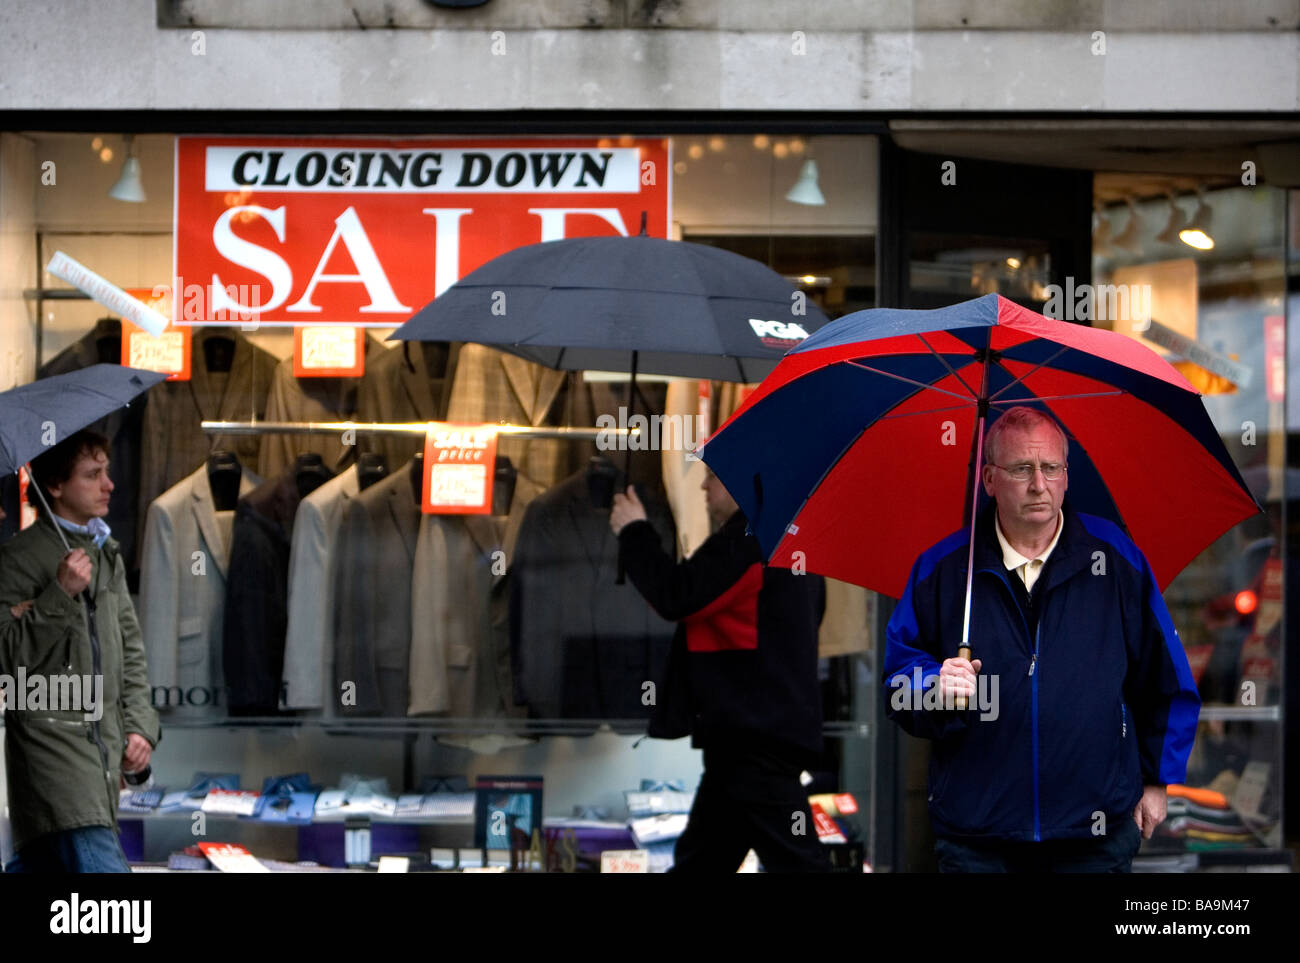 Closing down sale in London UK - Stock Image